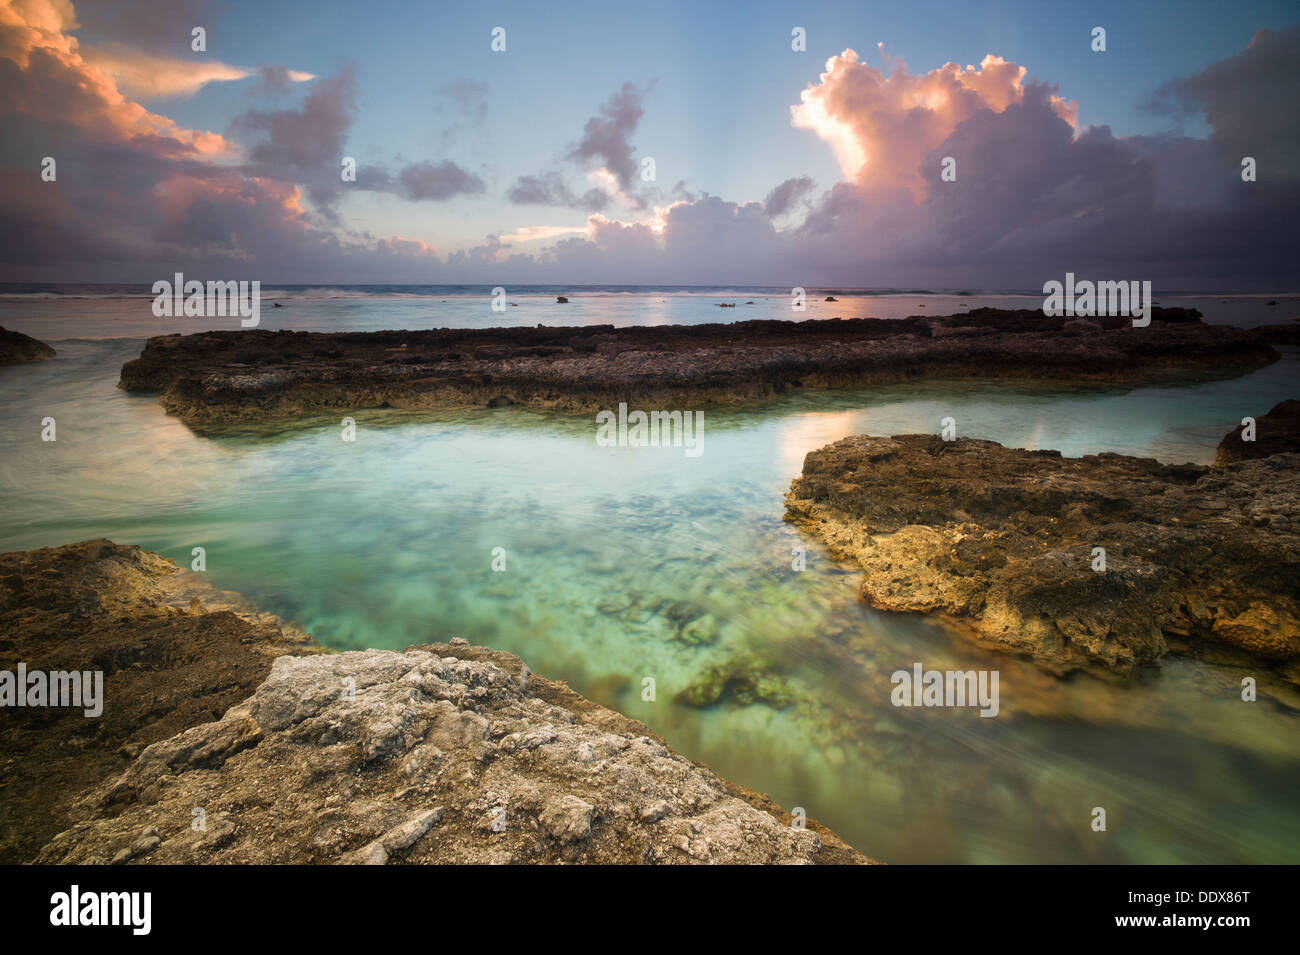 Sunrise shot of the Pacific Ocean side of Bora Bora. French Polynesia - Stock Image